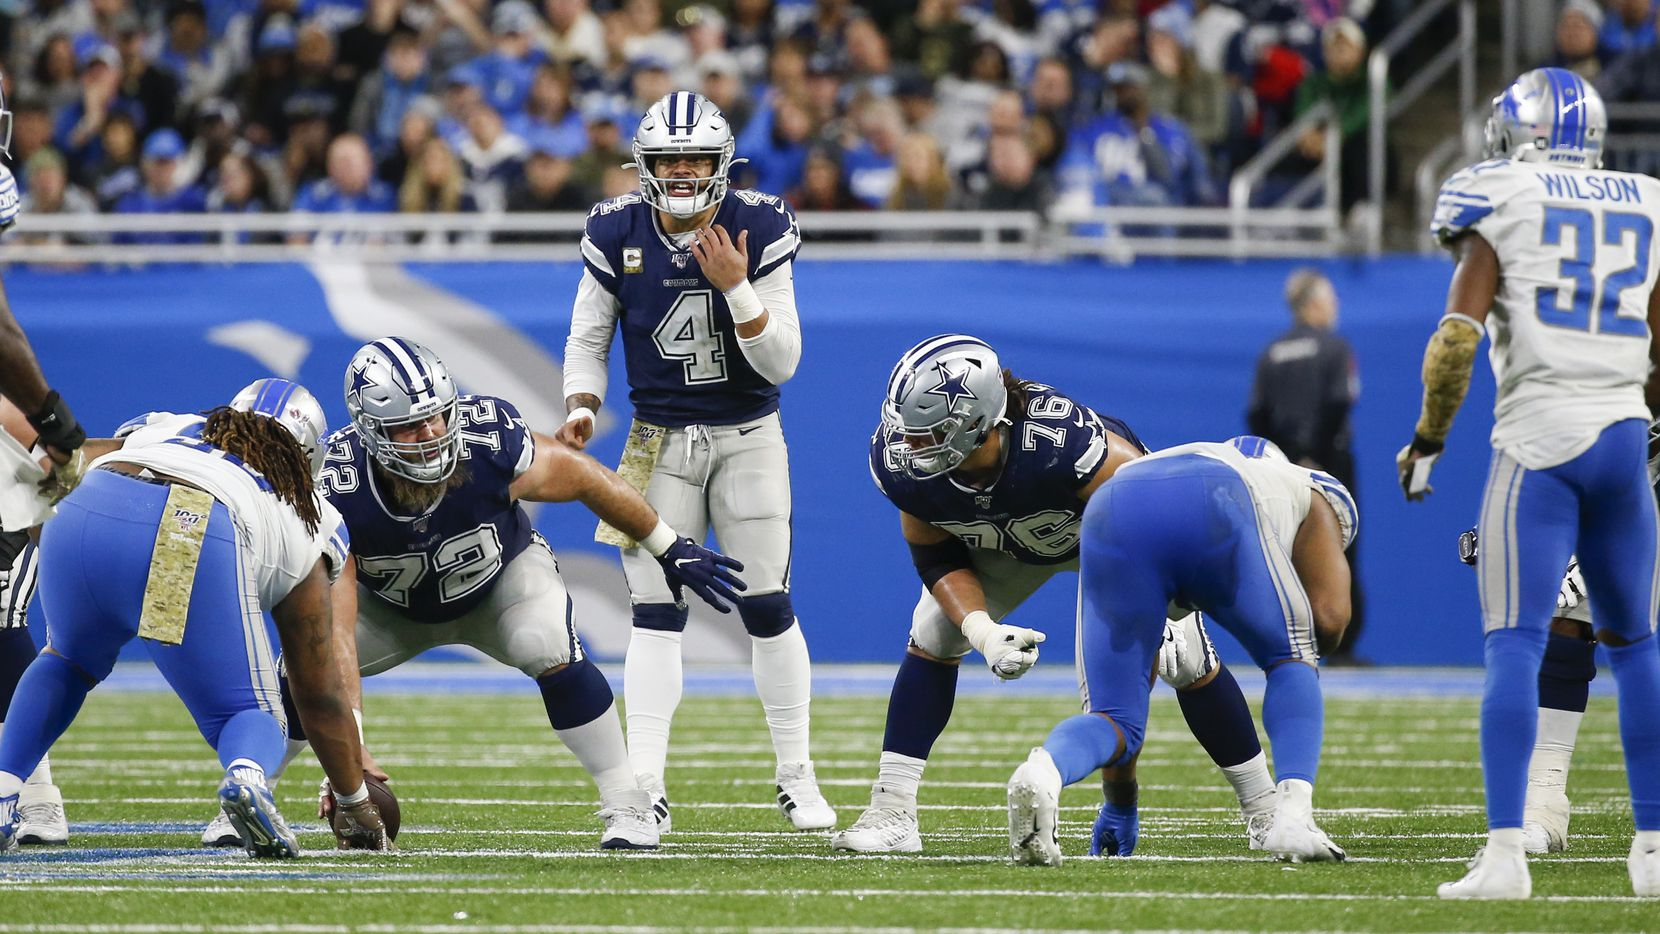 Dallas Cowboys quarterback Dak Prescott (4) calls a play during the second half of a NFL football matchup between the Detroit Lions and the Dallas Cowboys at Ford Field in Detroit, Michigan, on Sunday, Nov. 17, 2019. (Ryan Michalesko/The Dallas Morning News)